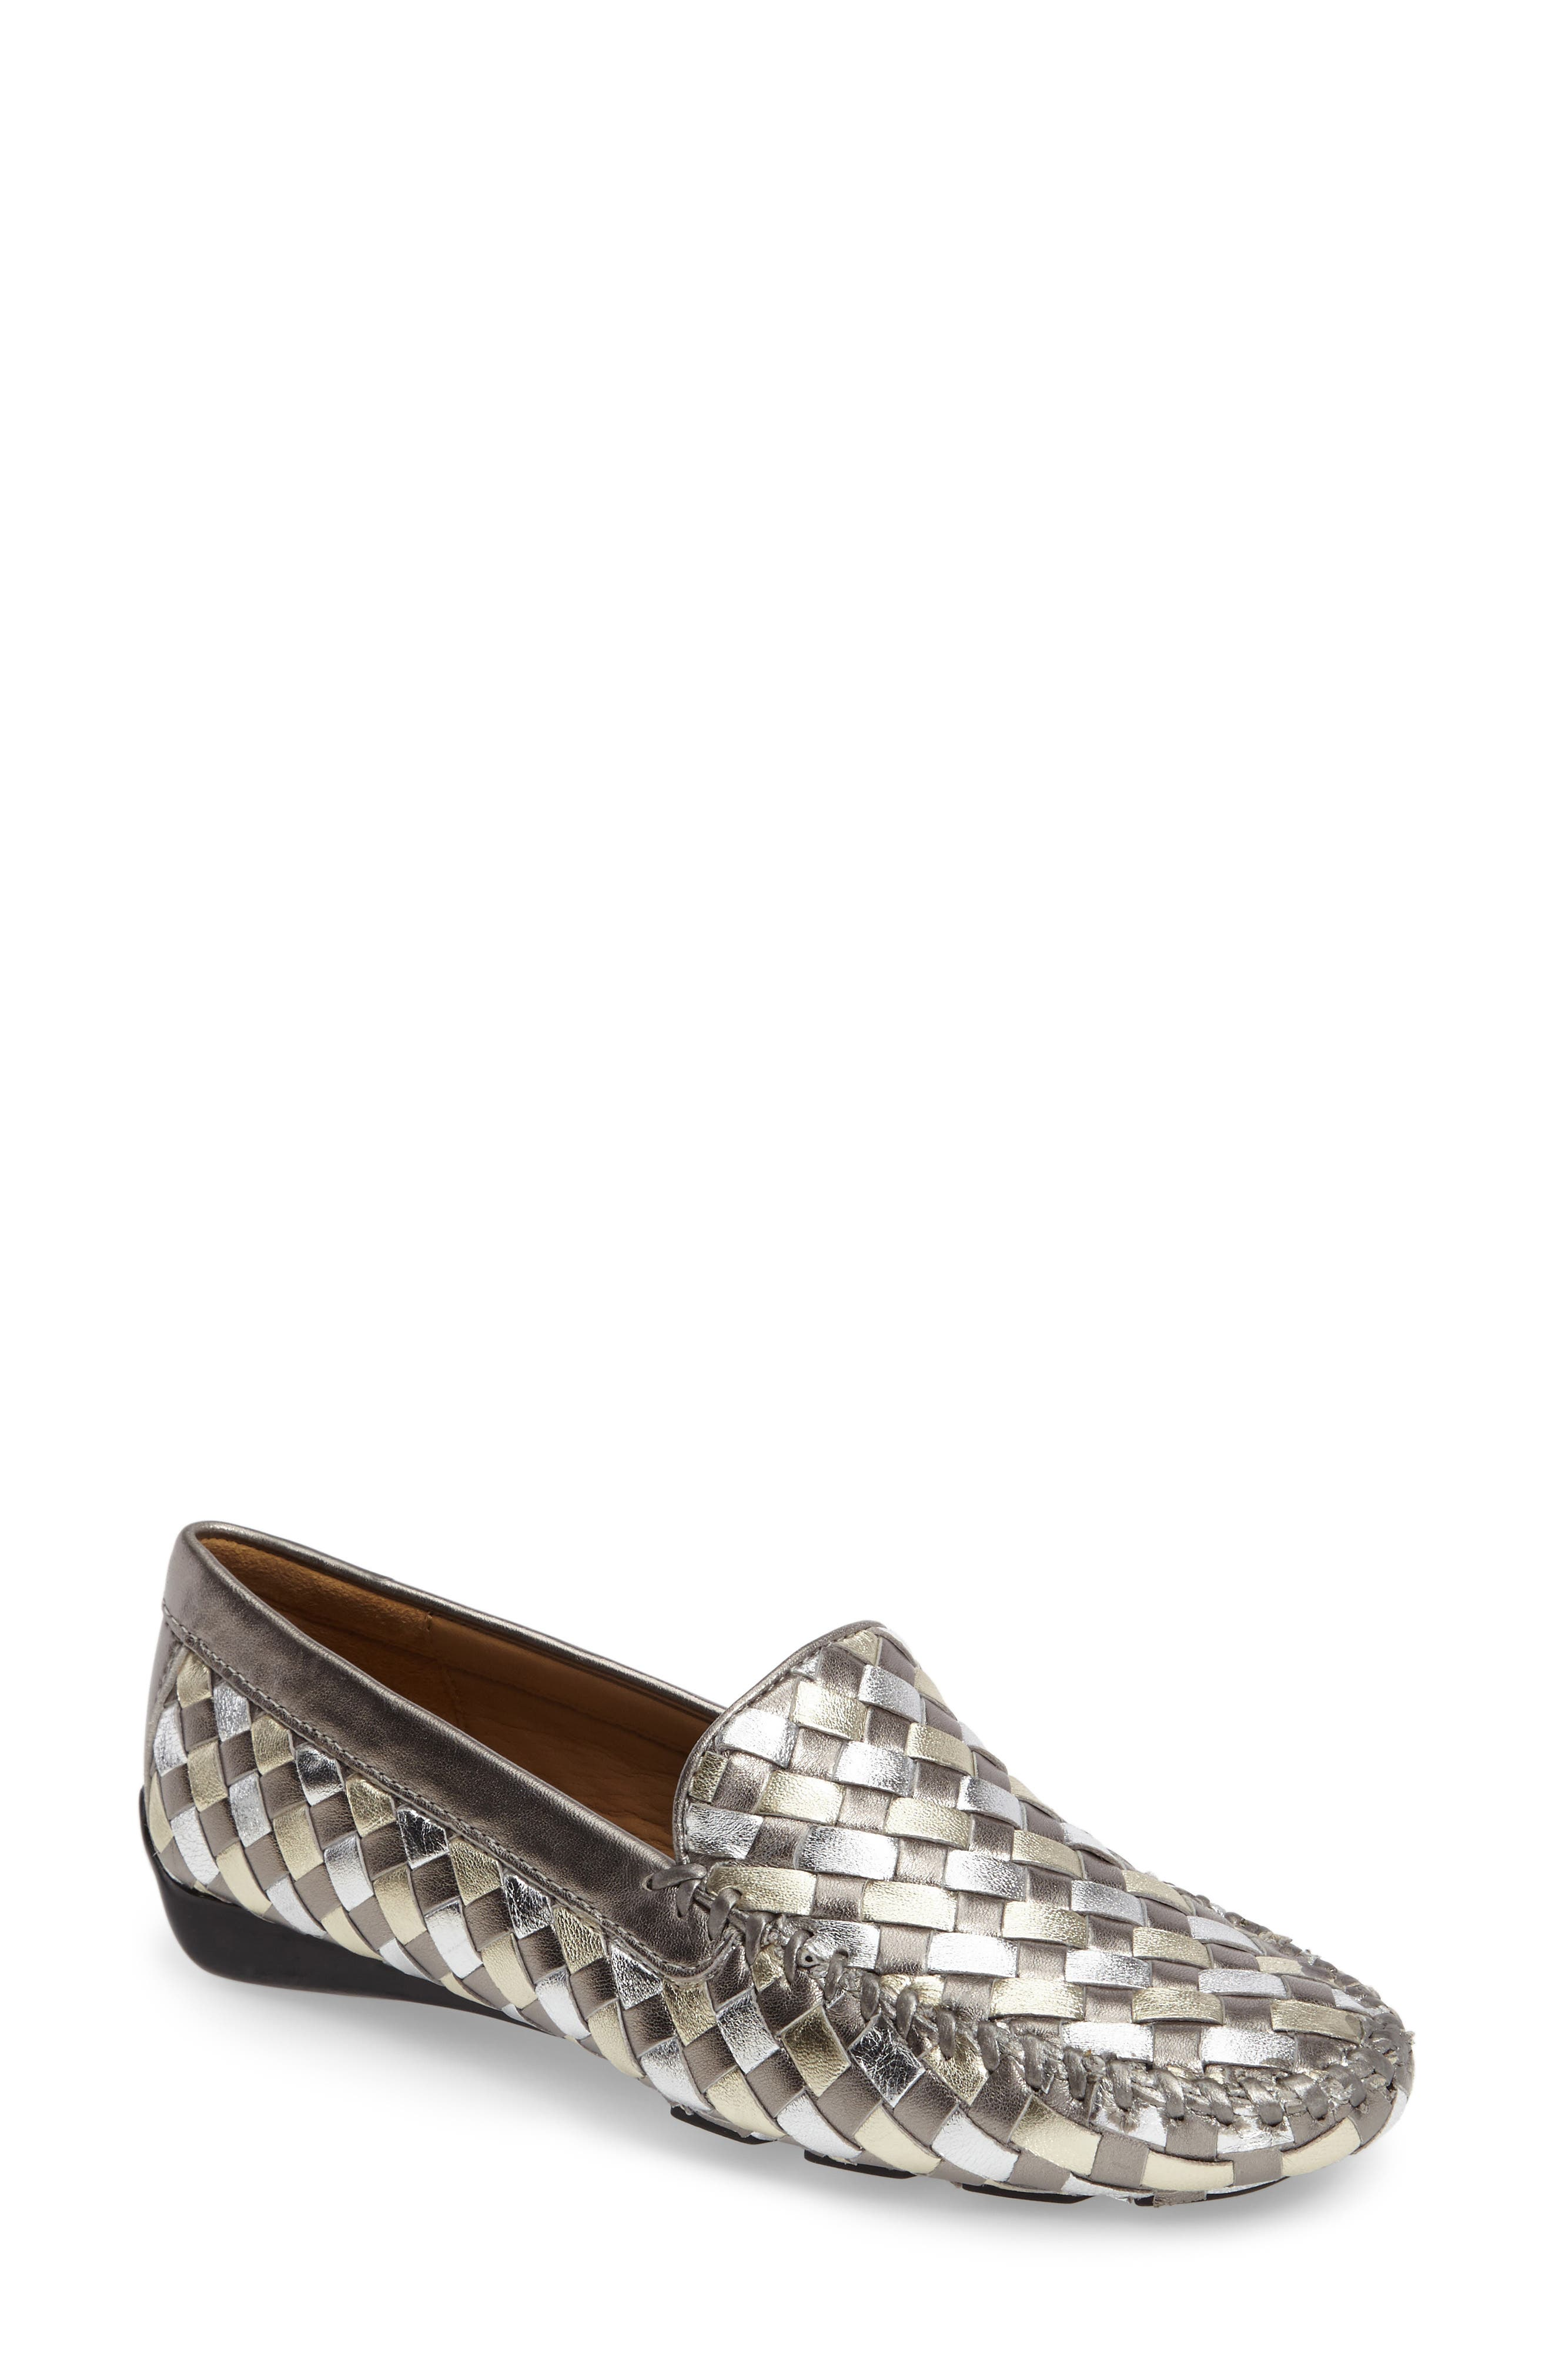 Woven Venetian Loafer,                         Main,                         color,